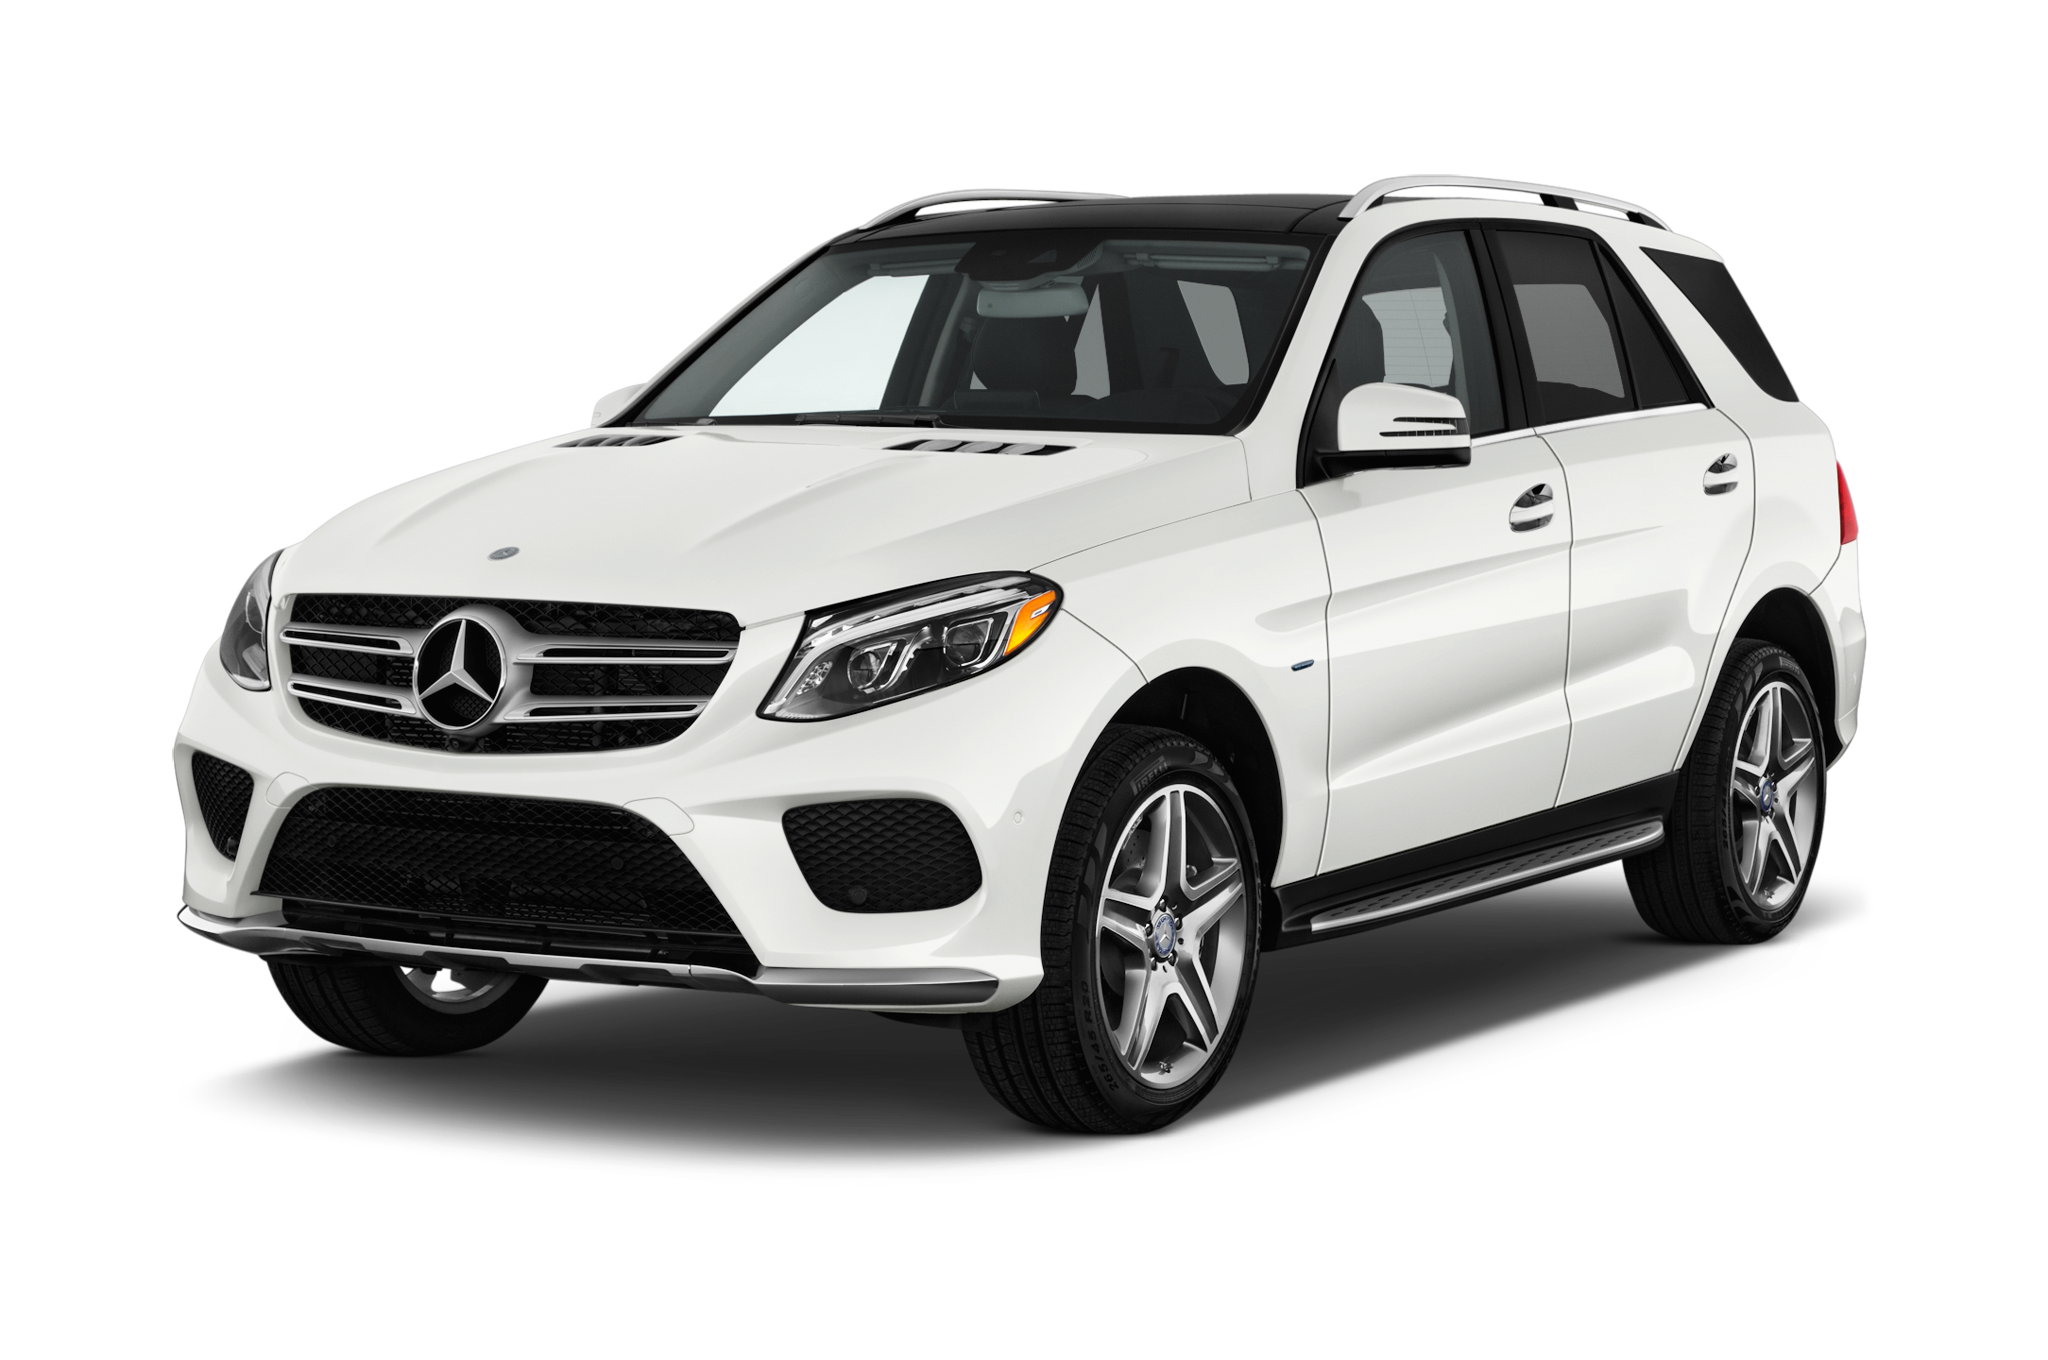 2016 mercedes benz gle class gle550e 4matic photos and. Black Bedroom Furniture Sets. Home Design Ideas